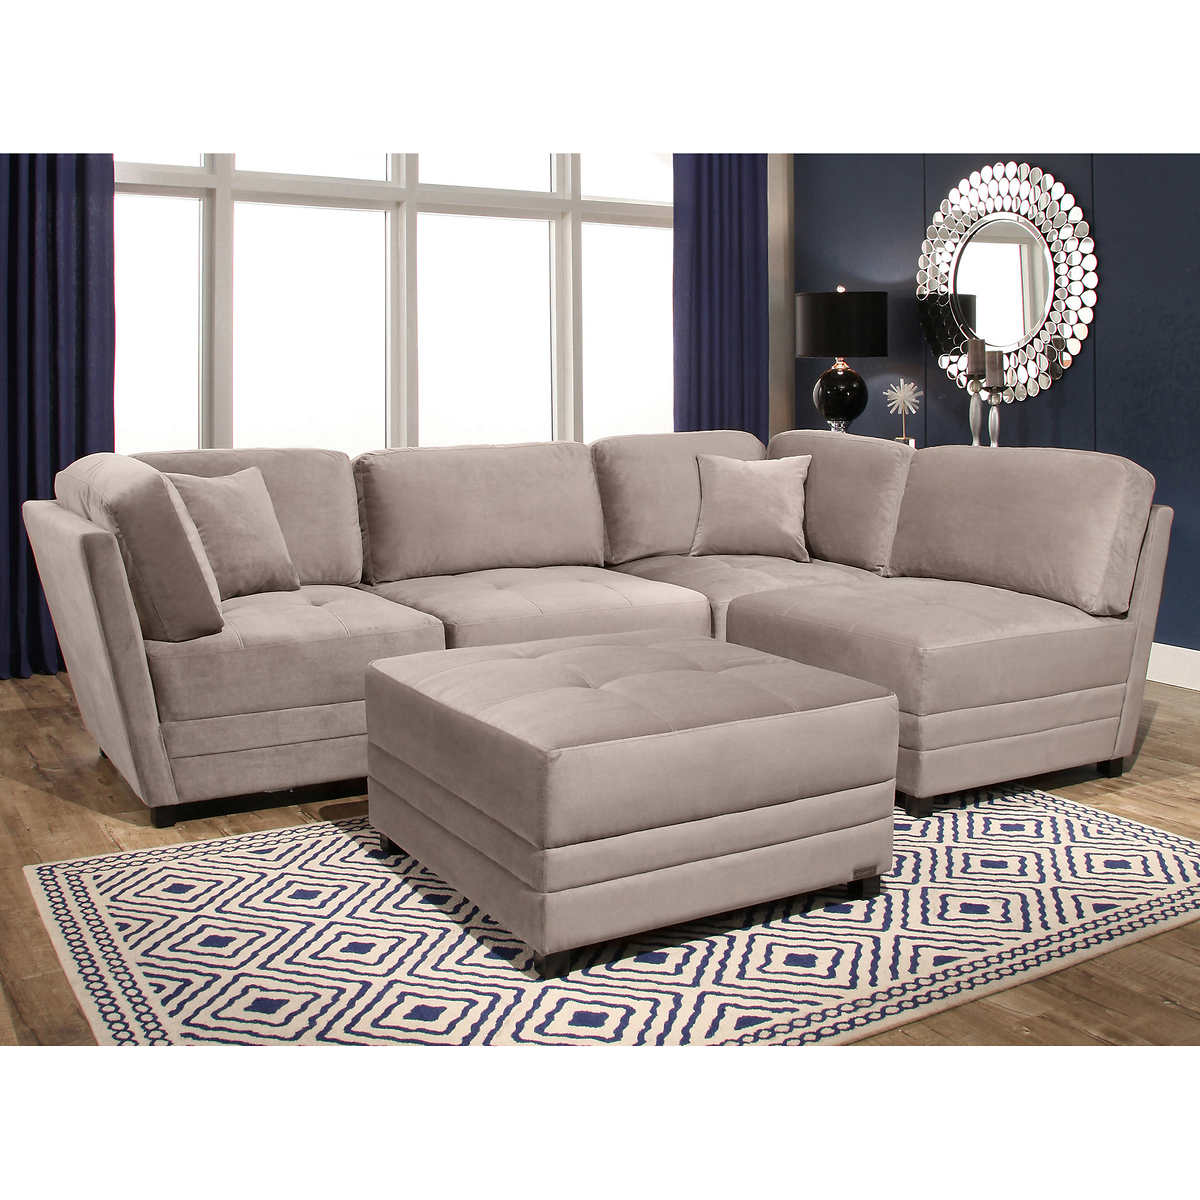 fabric sofas sectionals costco leyla 5 piece fabric modular sectional living room set